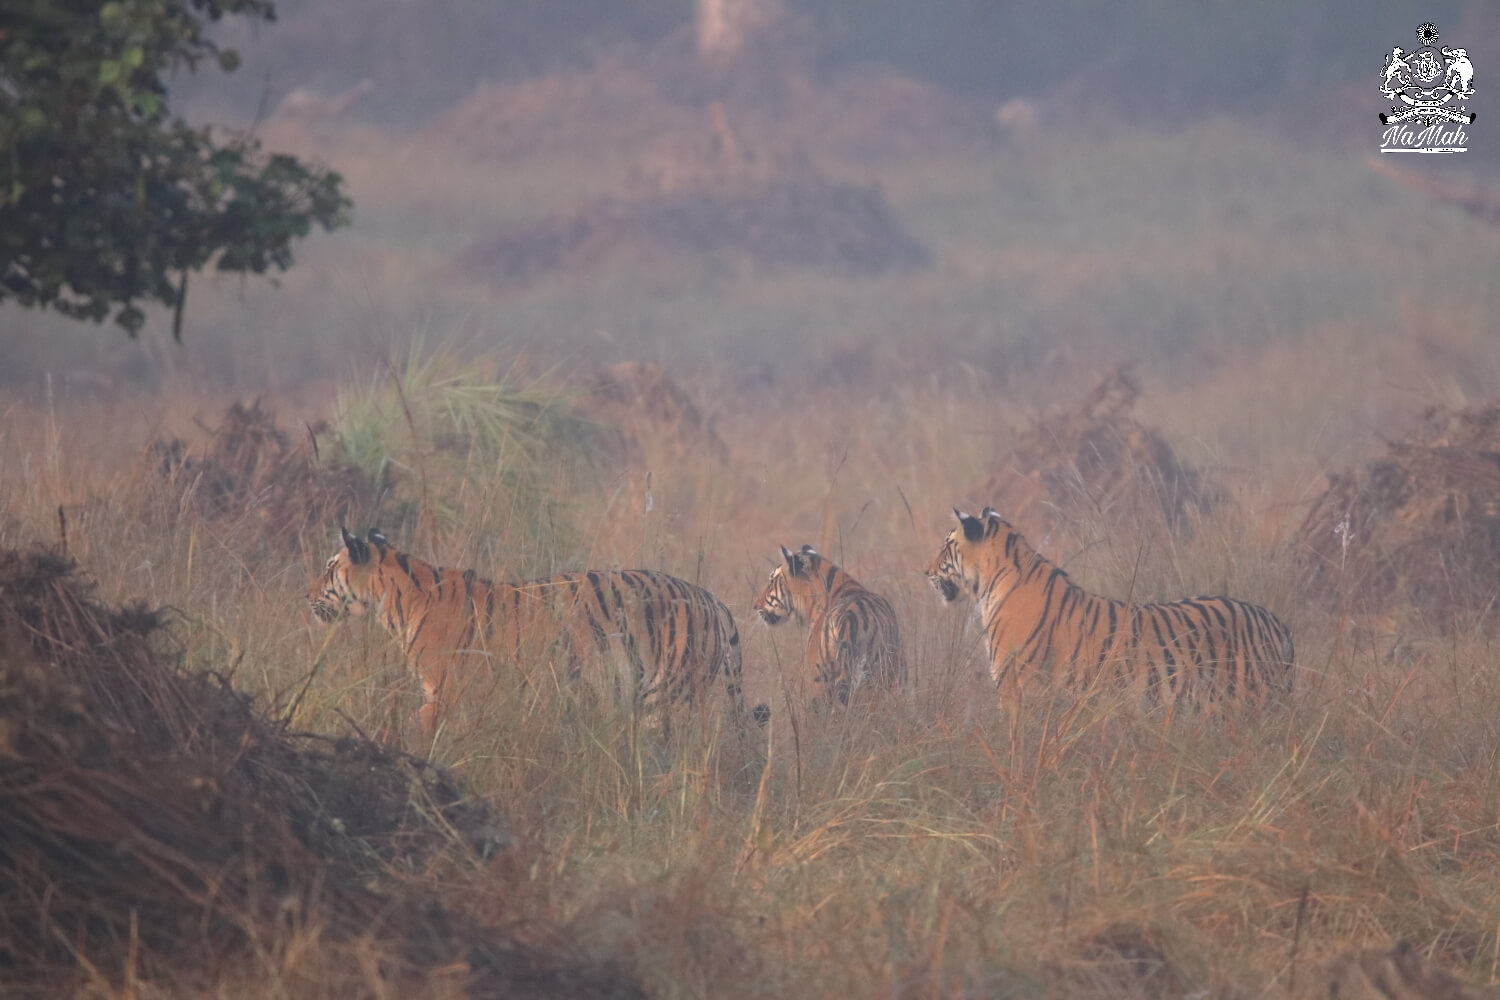 Tigers standing together in tall grass in early winter morning